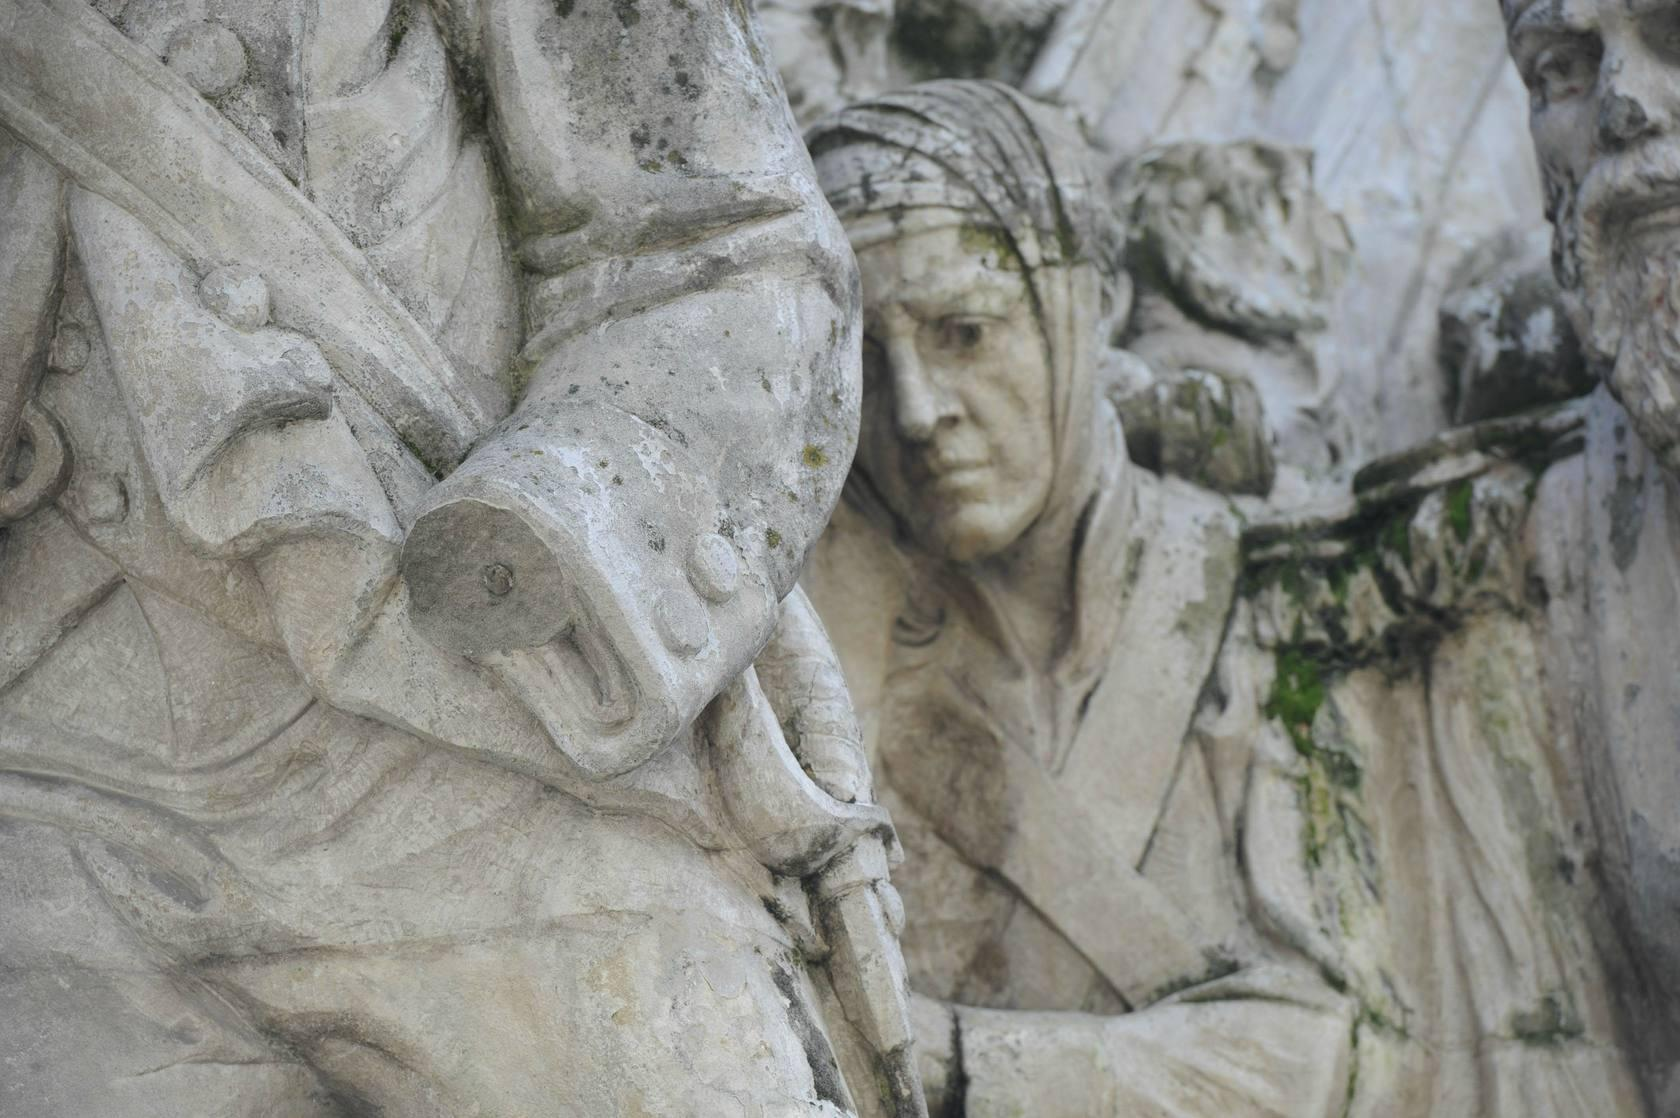 Detalles del monumento de la Batalla de Vitoria